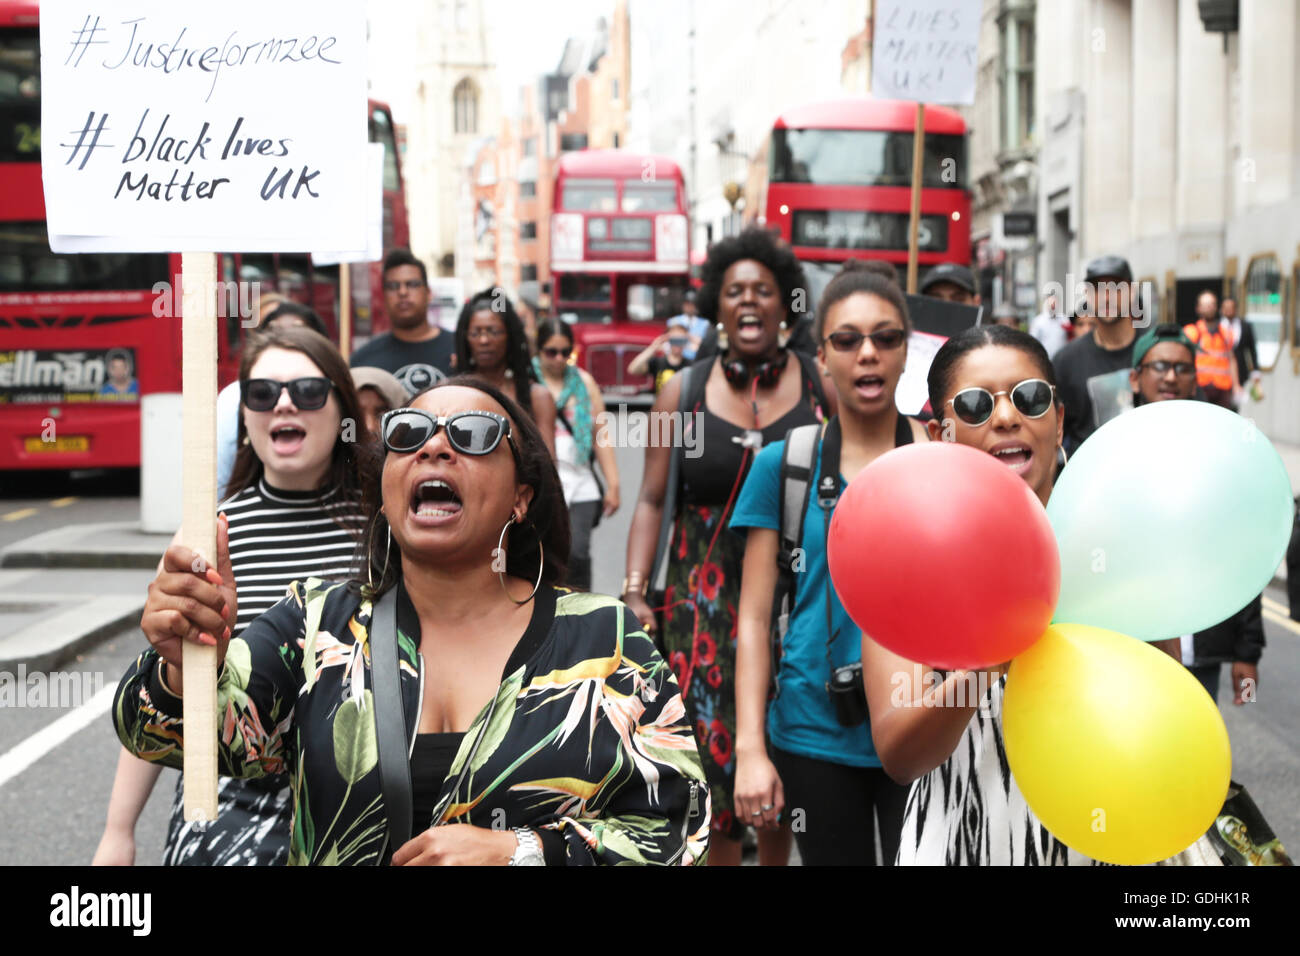 London, UK. 17th July, 2016. Family friend Ava Morgan (L) and supporters with banners and placards march from oxford - Stock Image